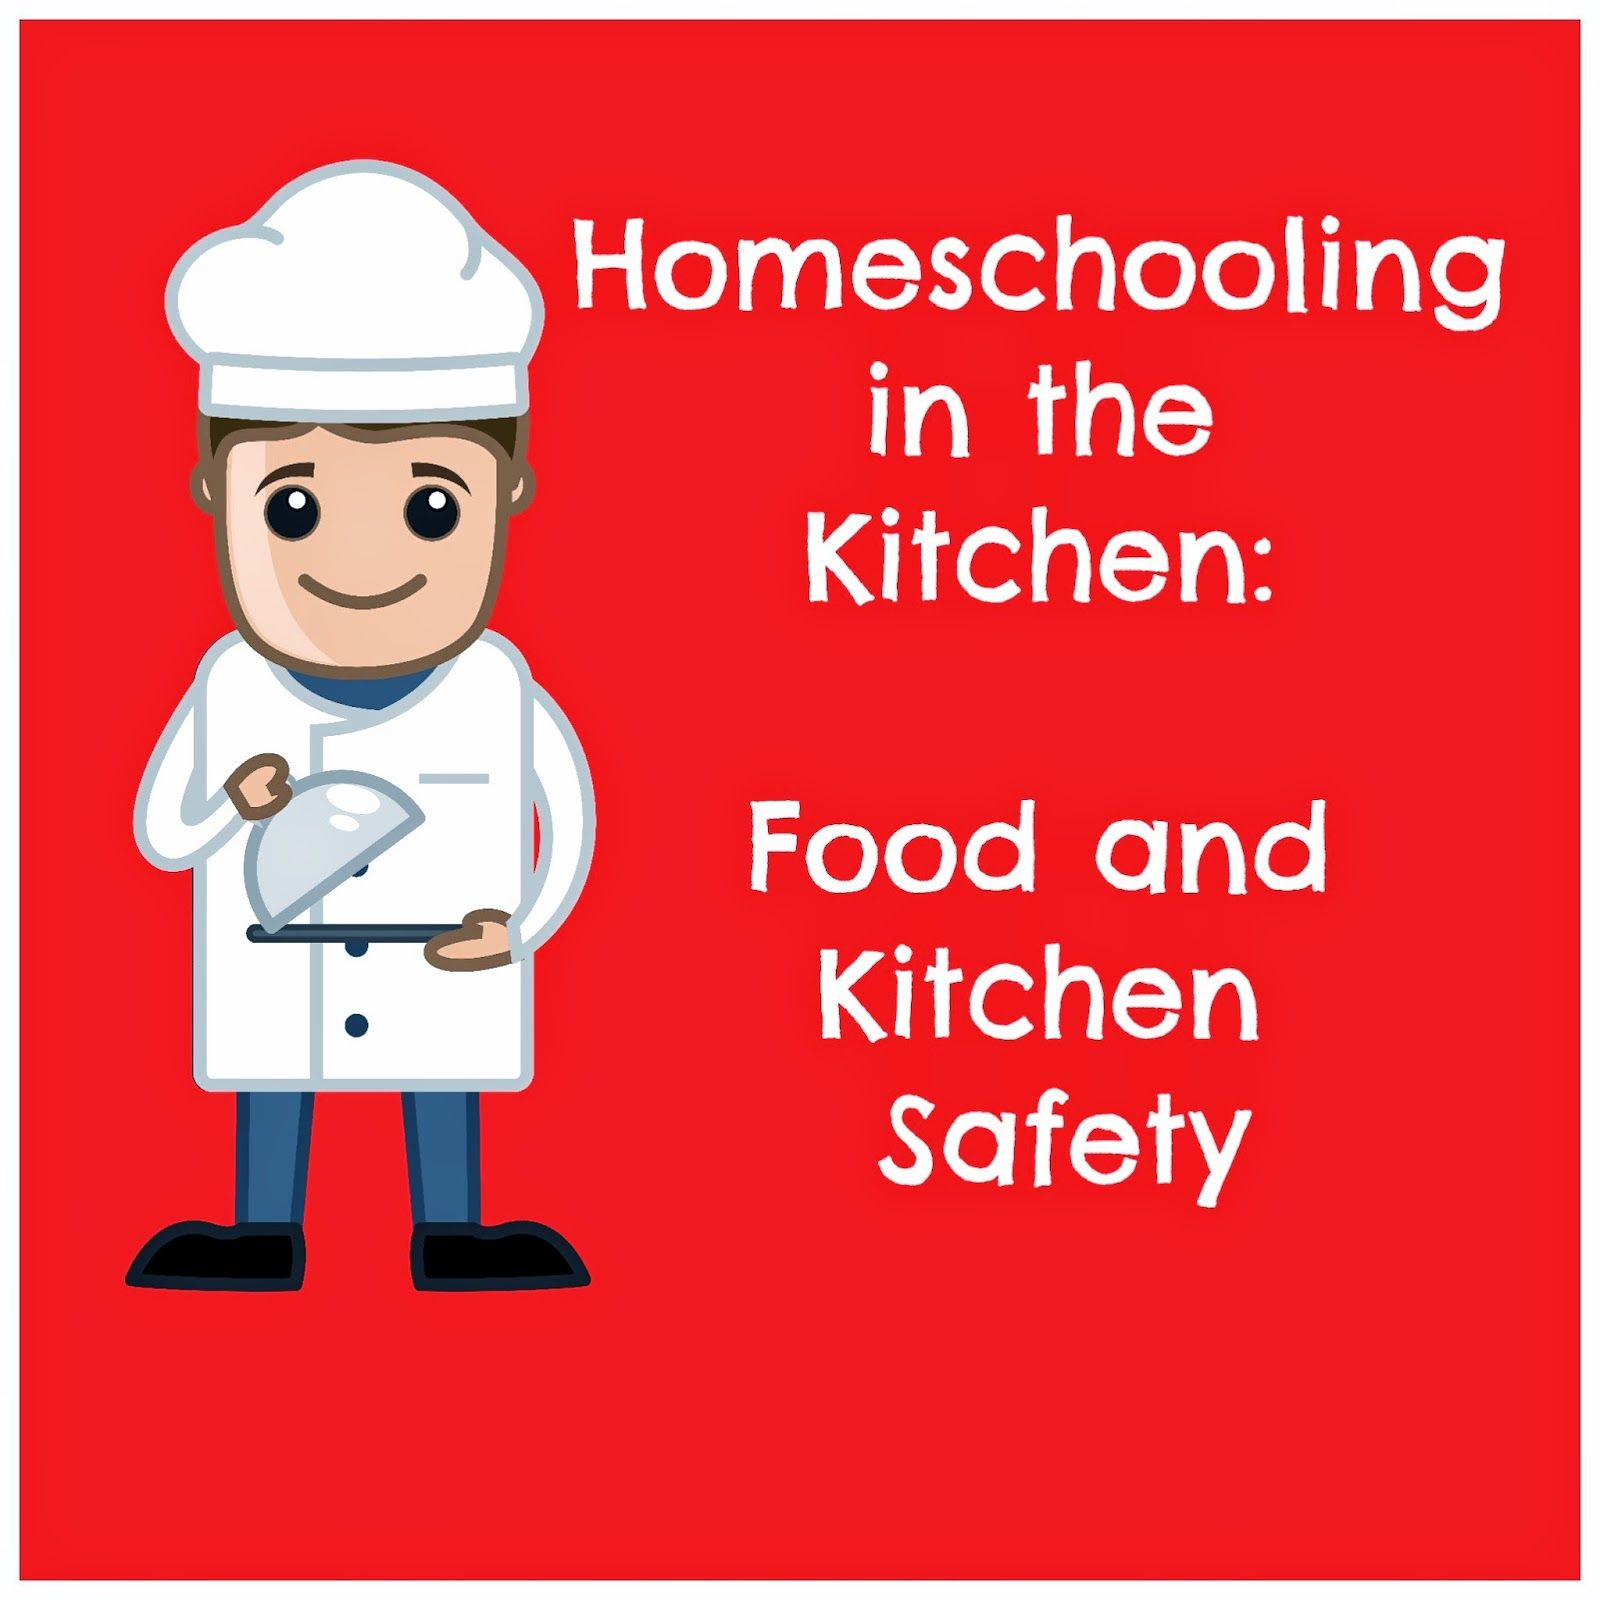 Food And Kitchen Safety Homeschooling In The Kitchen